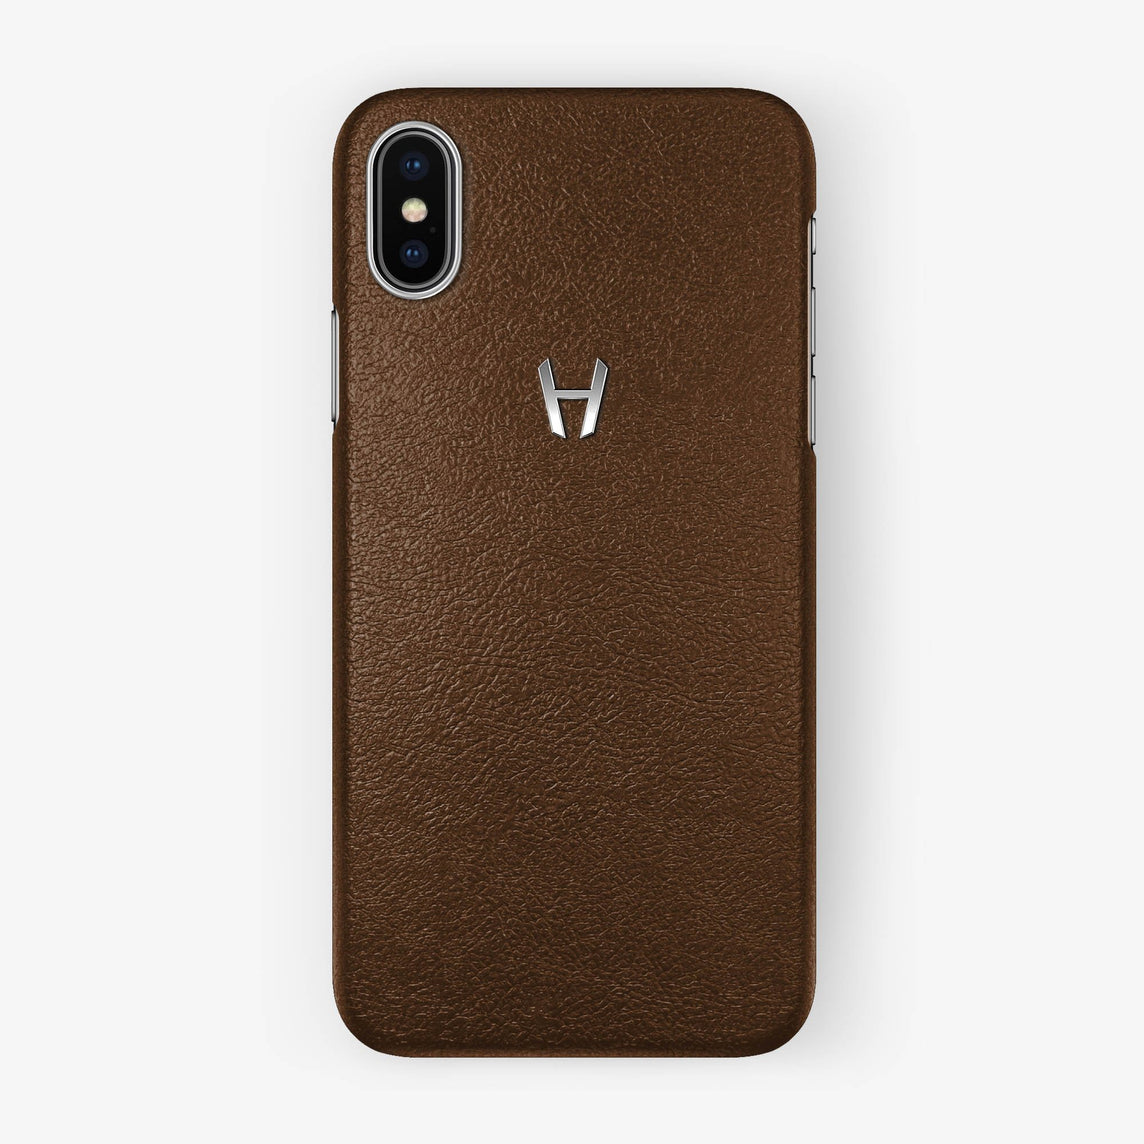 Brown Calfskin iPhone Case for iPhone X finishing stainless steel - Hadoro Luxury Cases